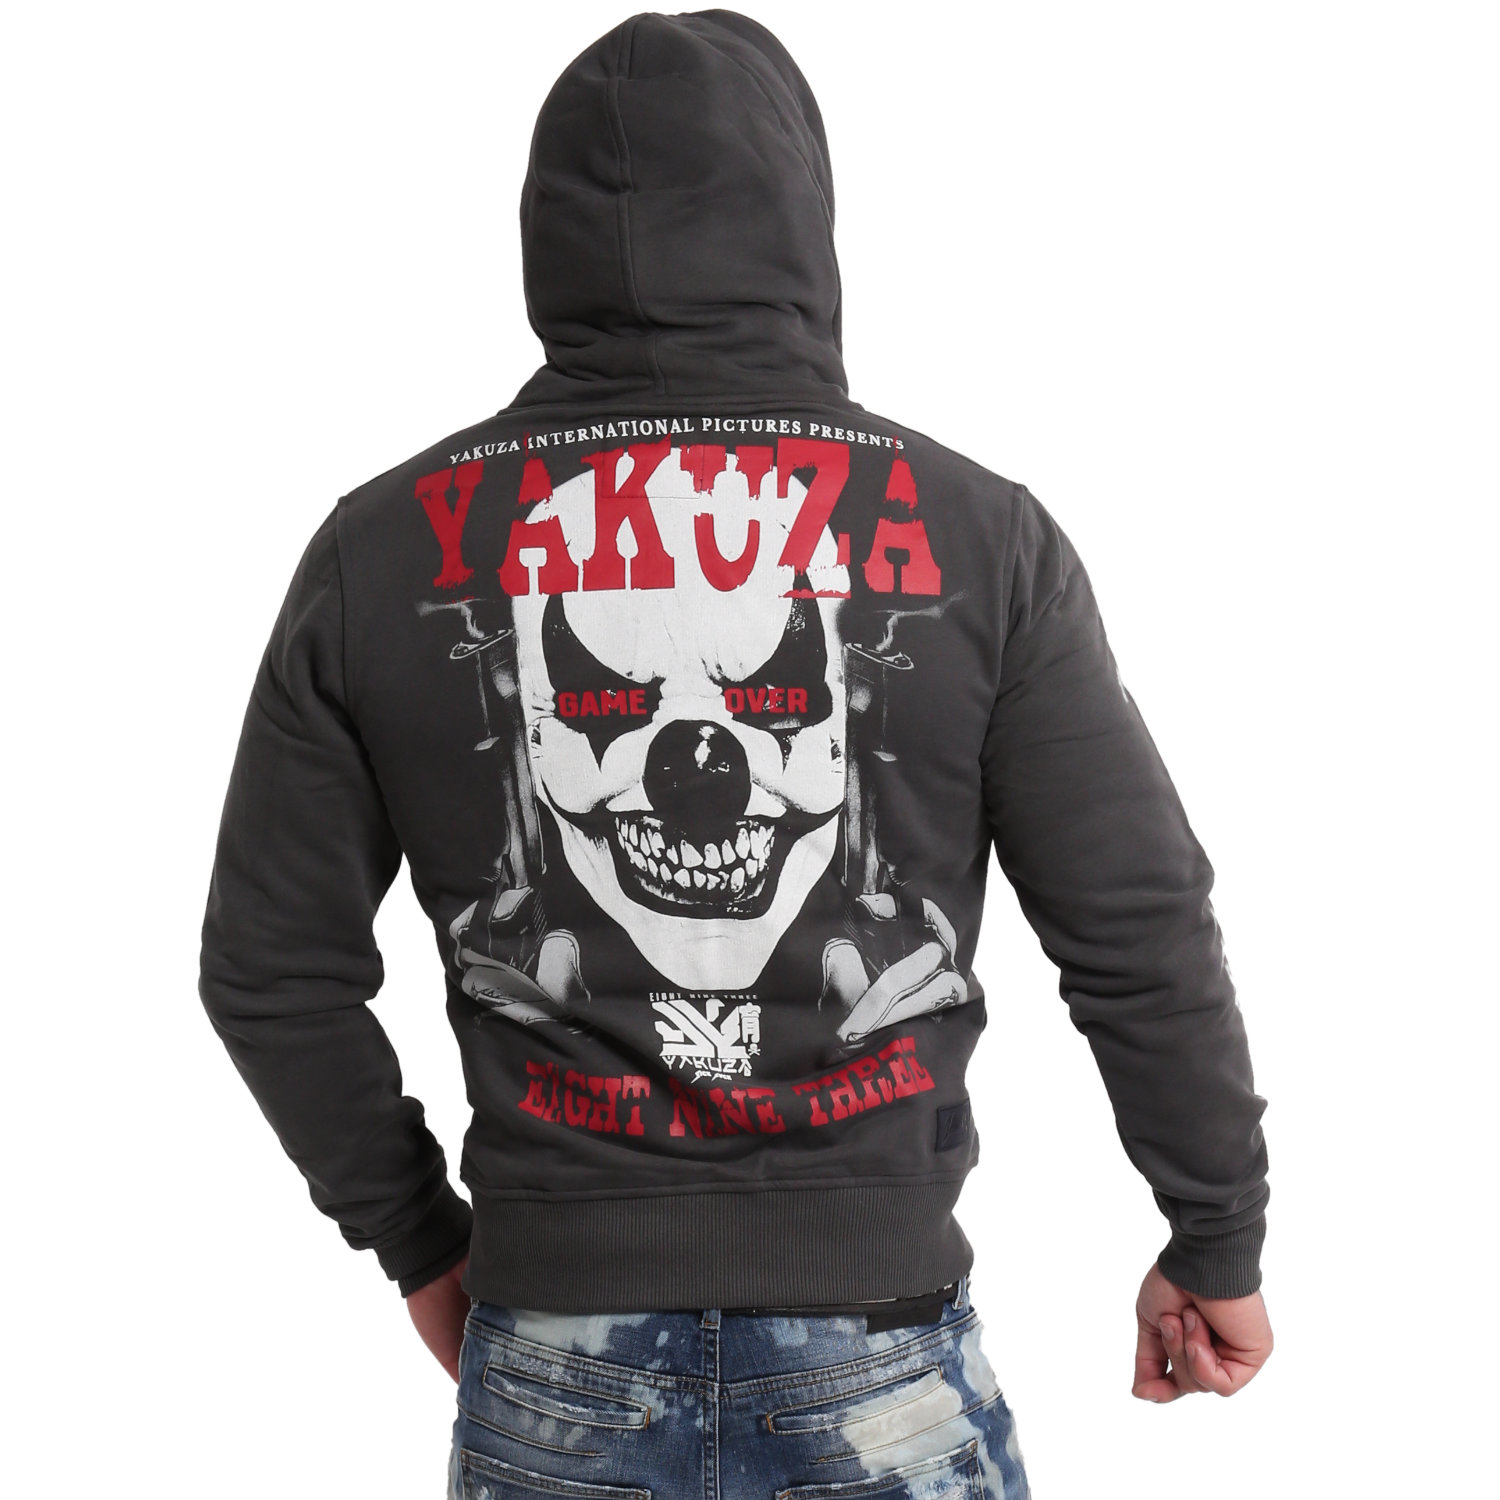 Duel The Clown Ninja Zip Hoodie